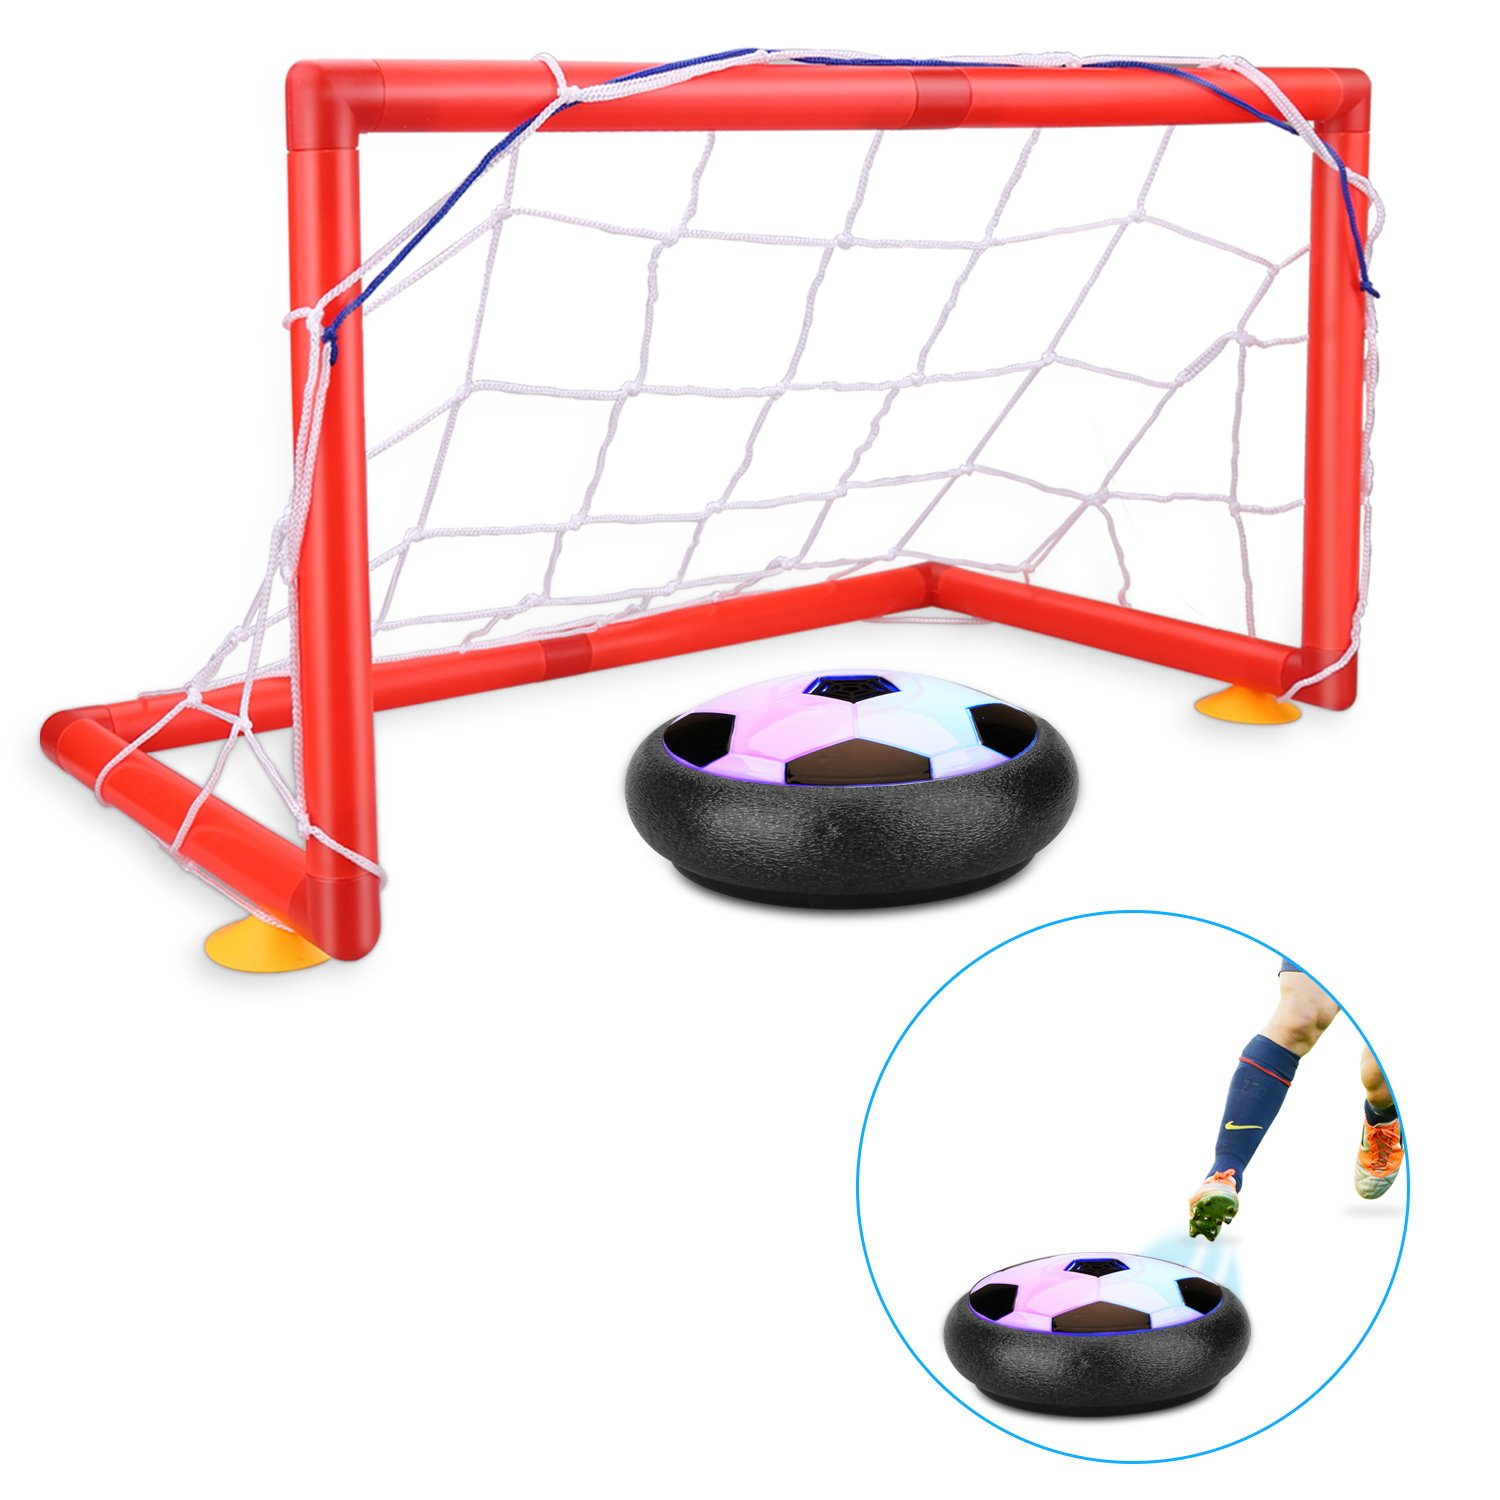 BAIVYLE Indoor Sport Kids Toys Hover Soccer Ball 3 4-16 Ye BOYI Soccer Goal Set Hover Football with 2 Gates for Children Gifts Sports Air Ball Indoor Outdoor Game with LED Lights-Boys // Girls Age of 2